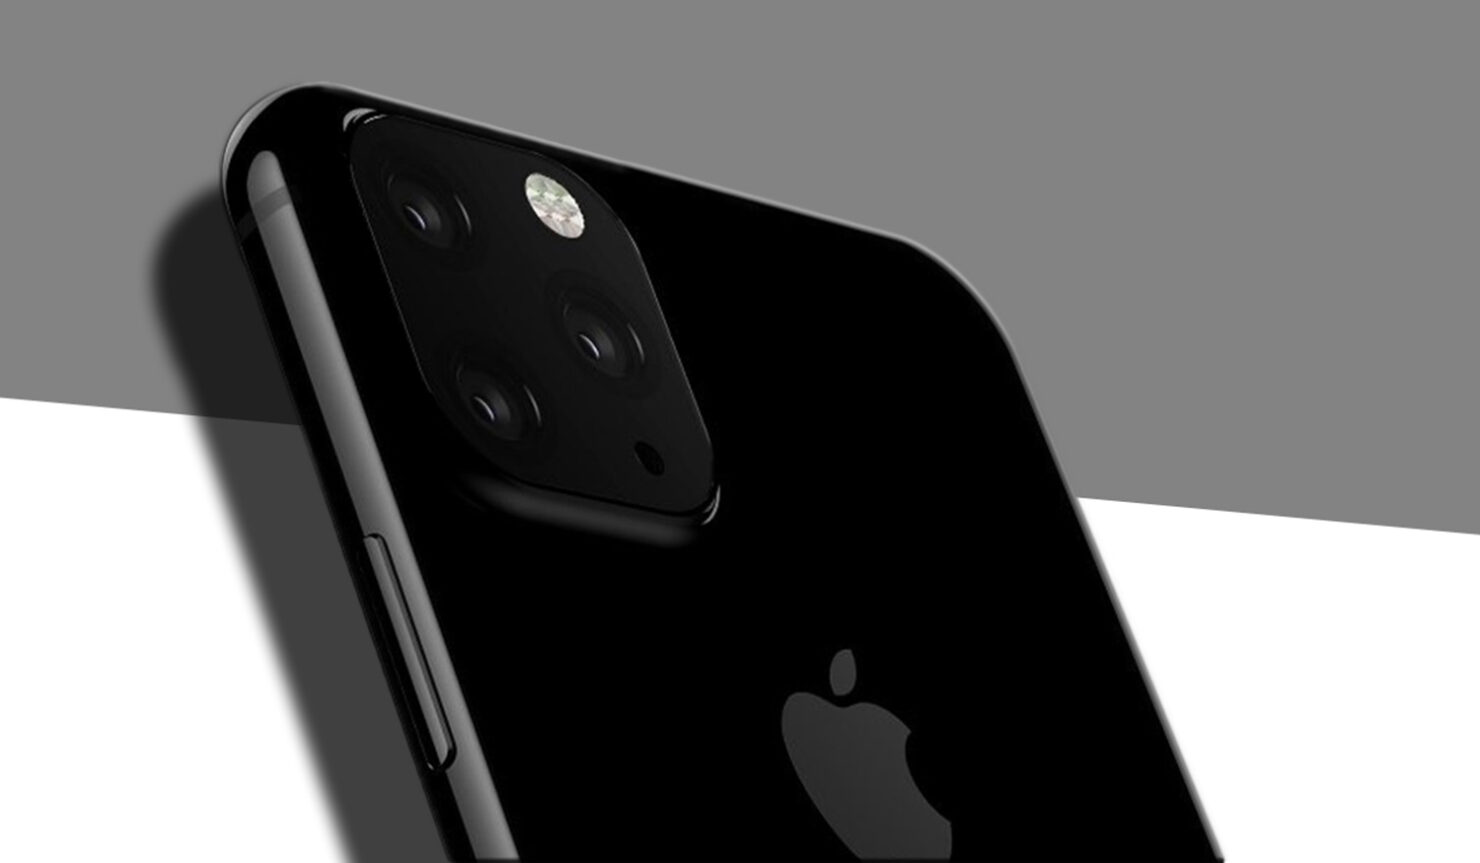 2019 iPhone family reportedly getting 12MP front cameras